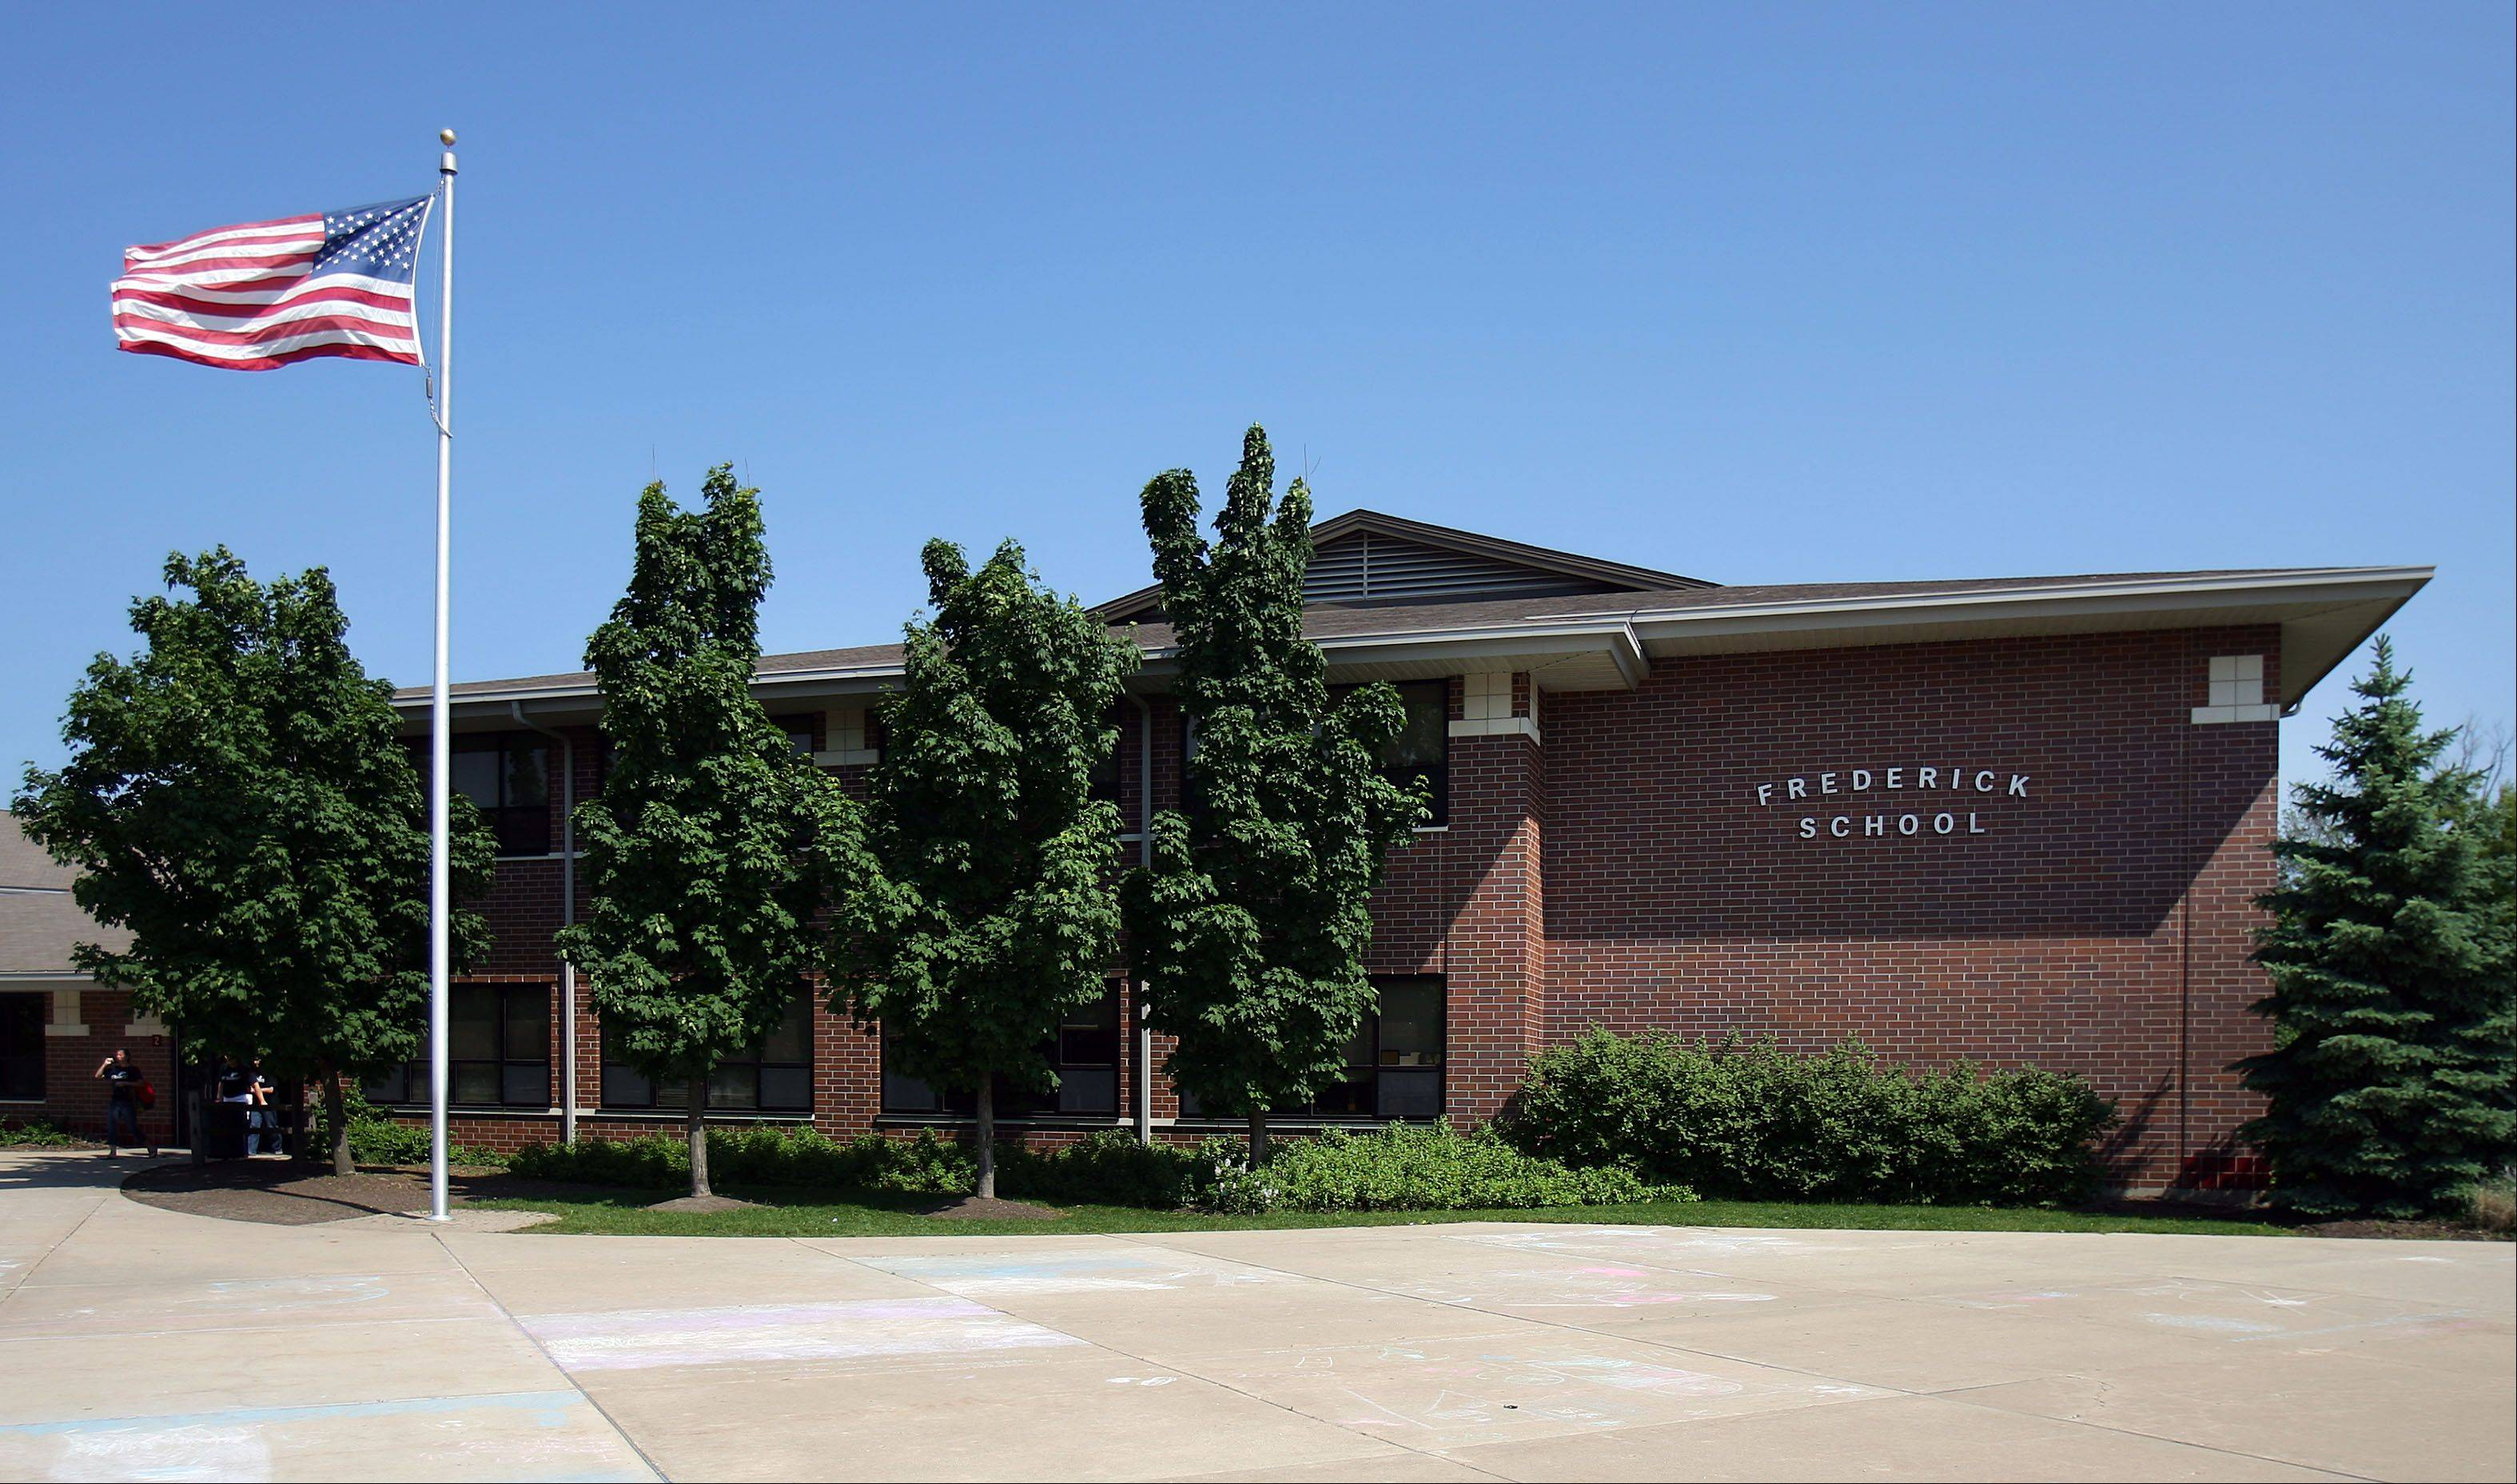 Frederick School is part of Grayslake Elementary District 46. School board members have agreed to raise next year�s tax levy.